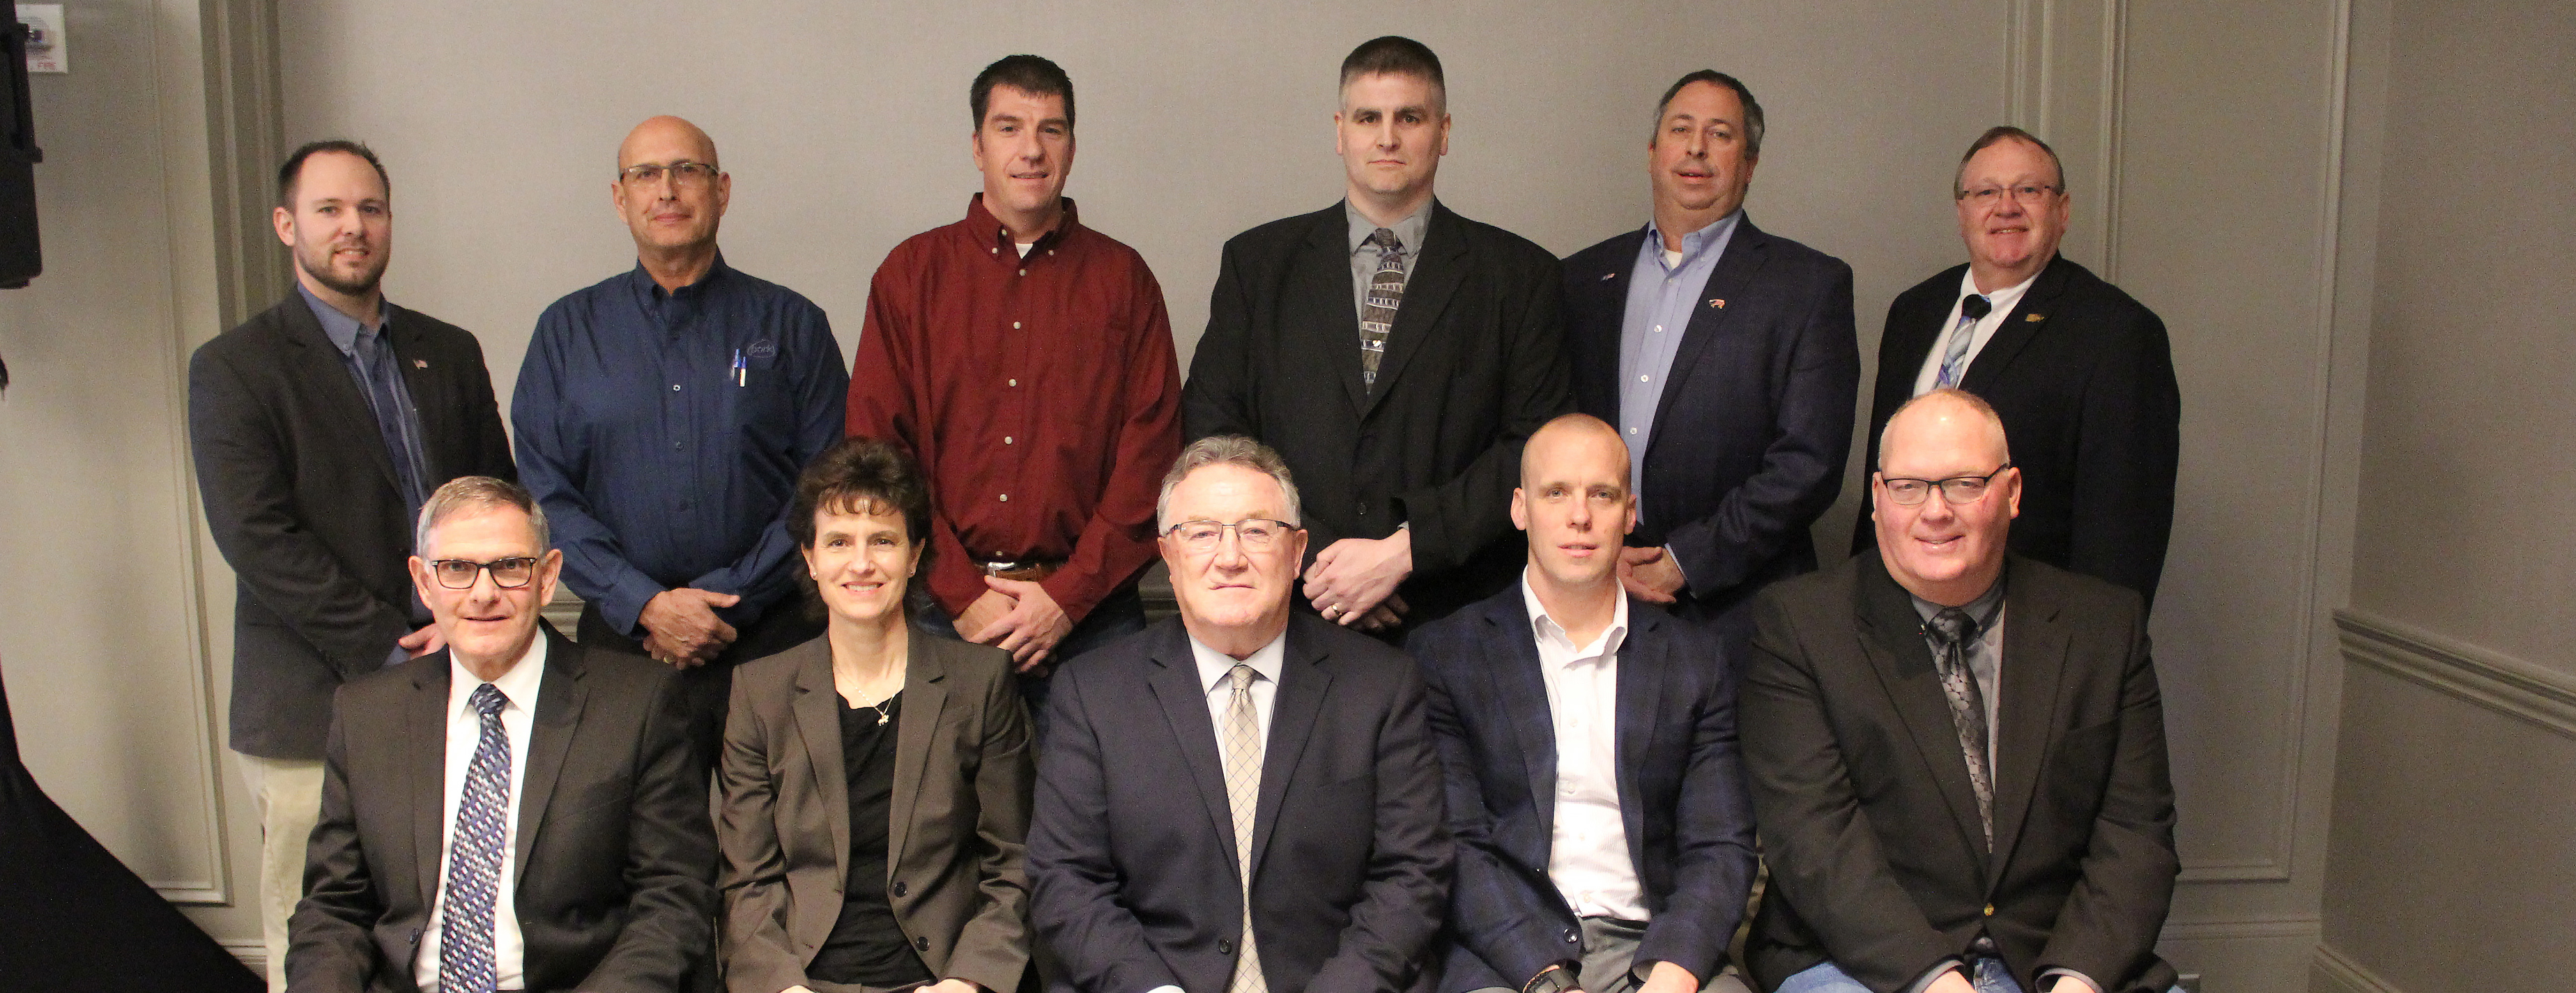 Meet the 2018 MPPA Executive Board